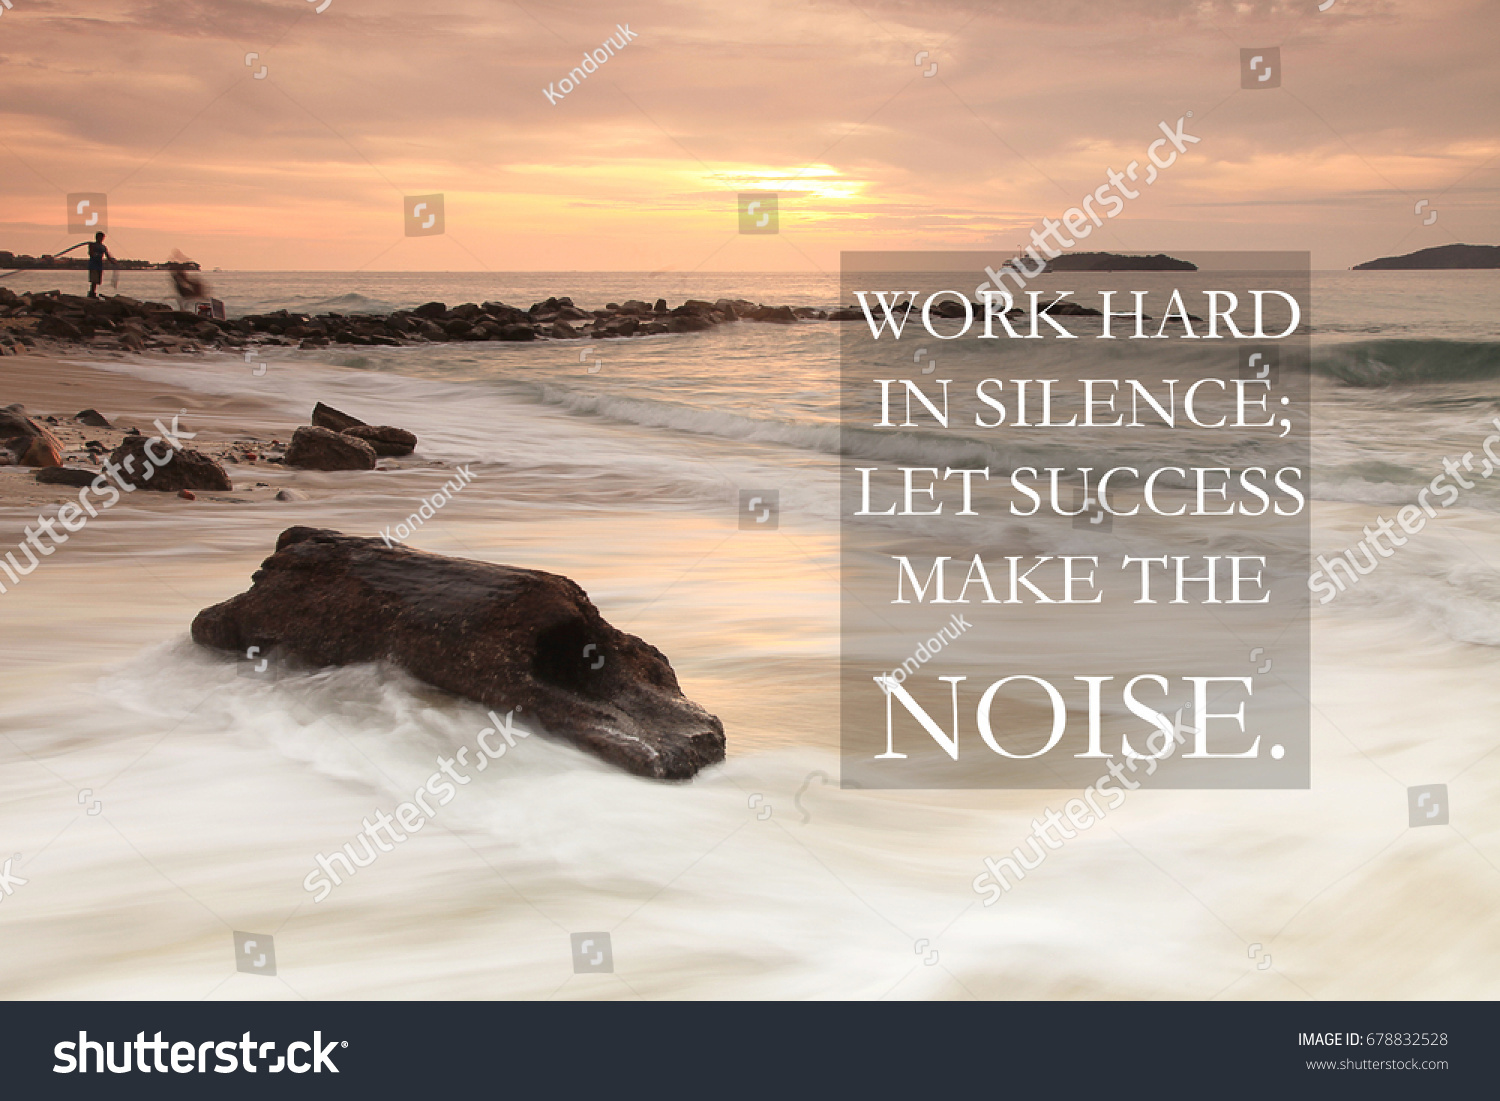 Blurry Sunset Beach Inspirational Quotes Work Stock Photo Edit Now